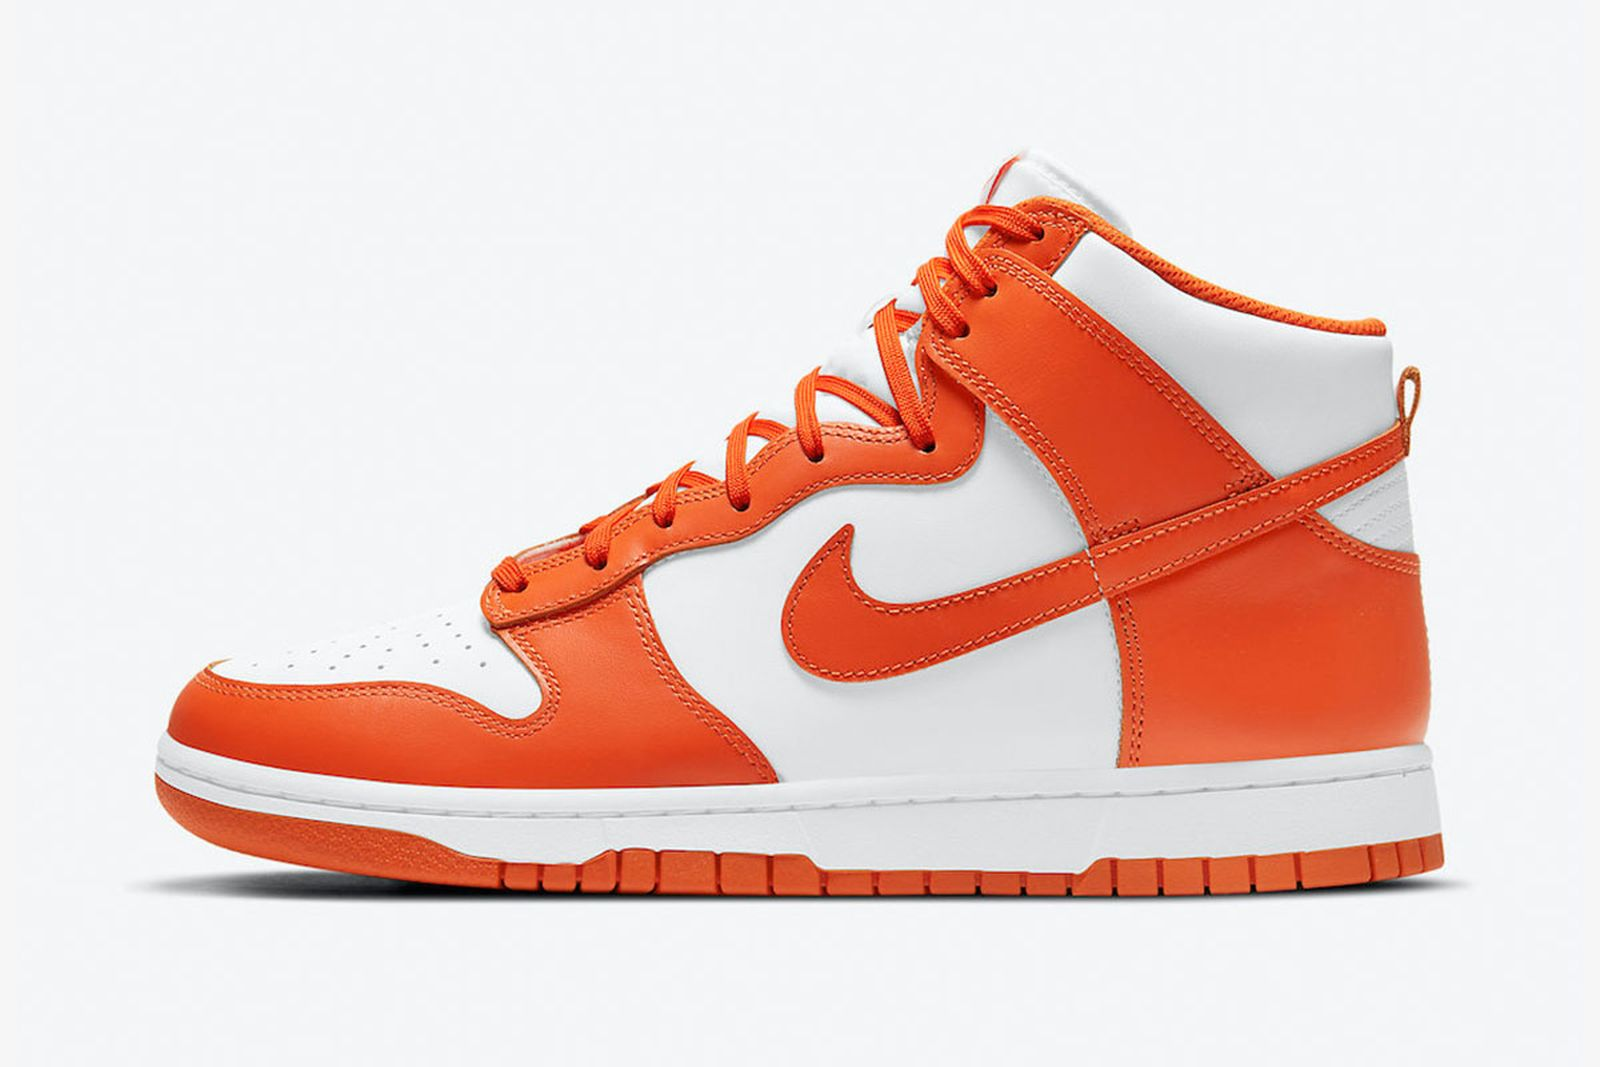 nike-dunk-high-syracuse-release-date-price-06